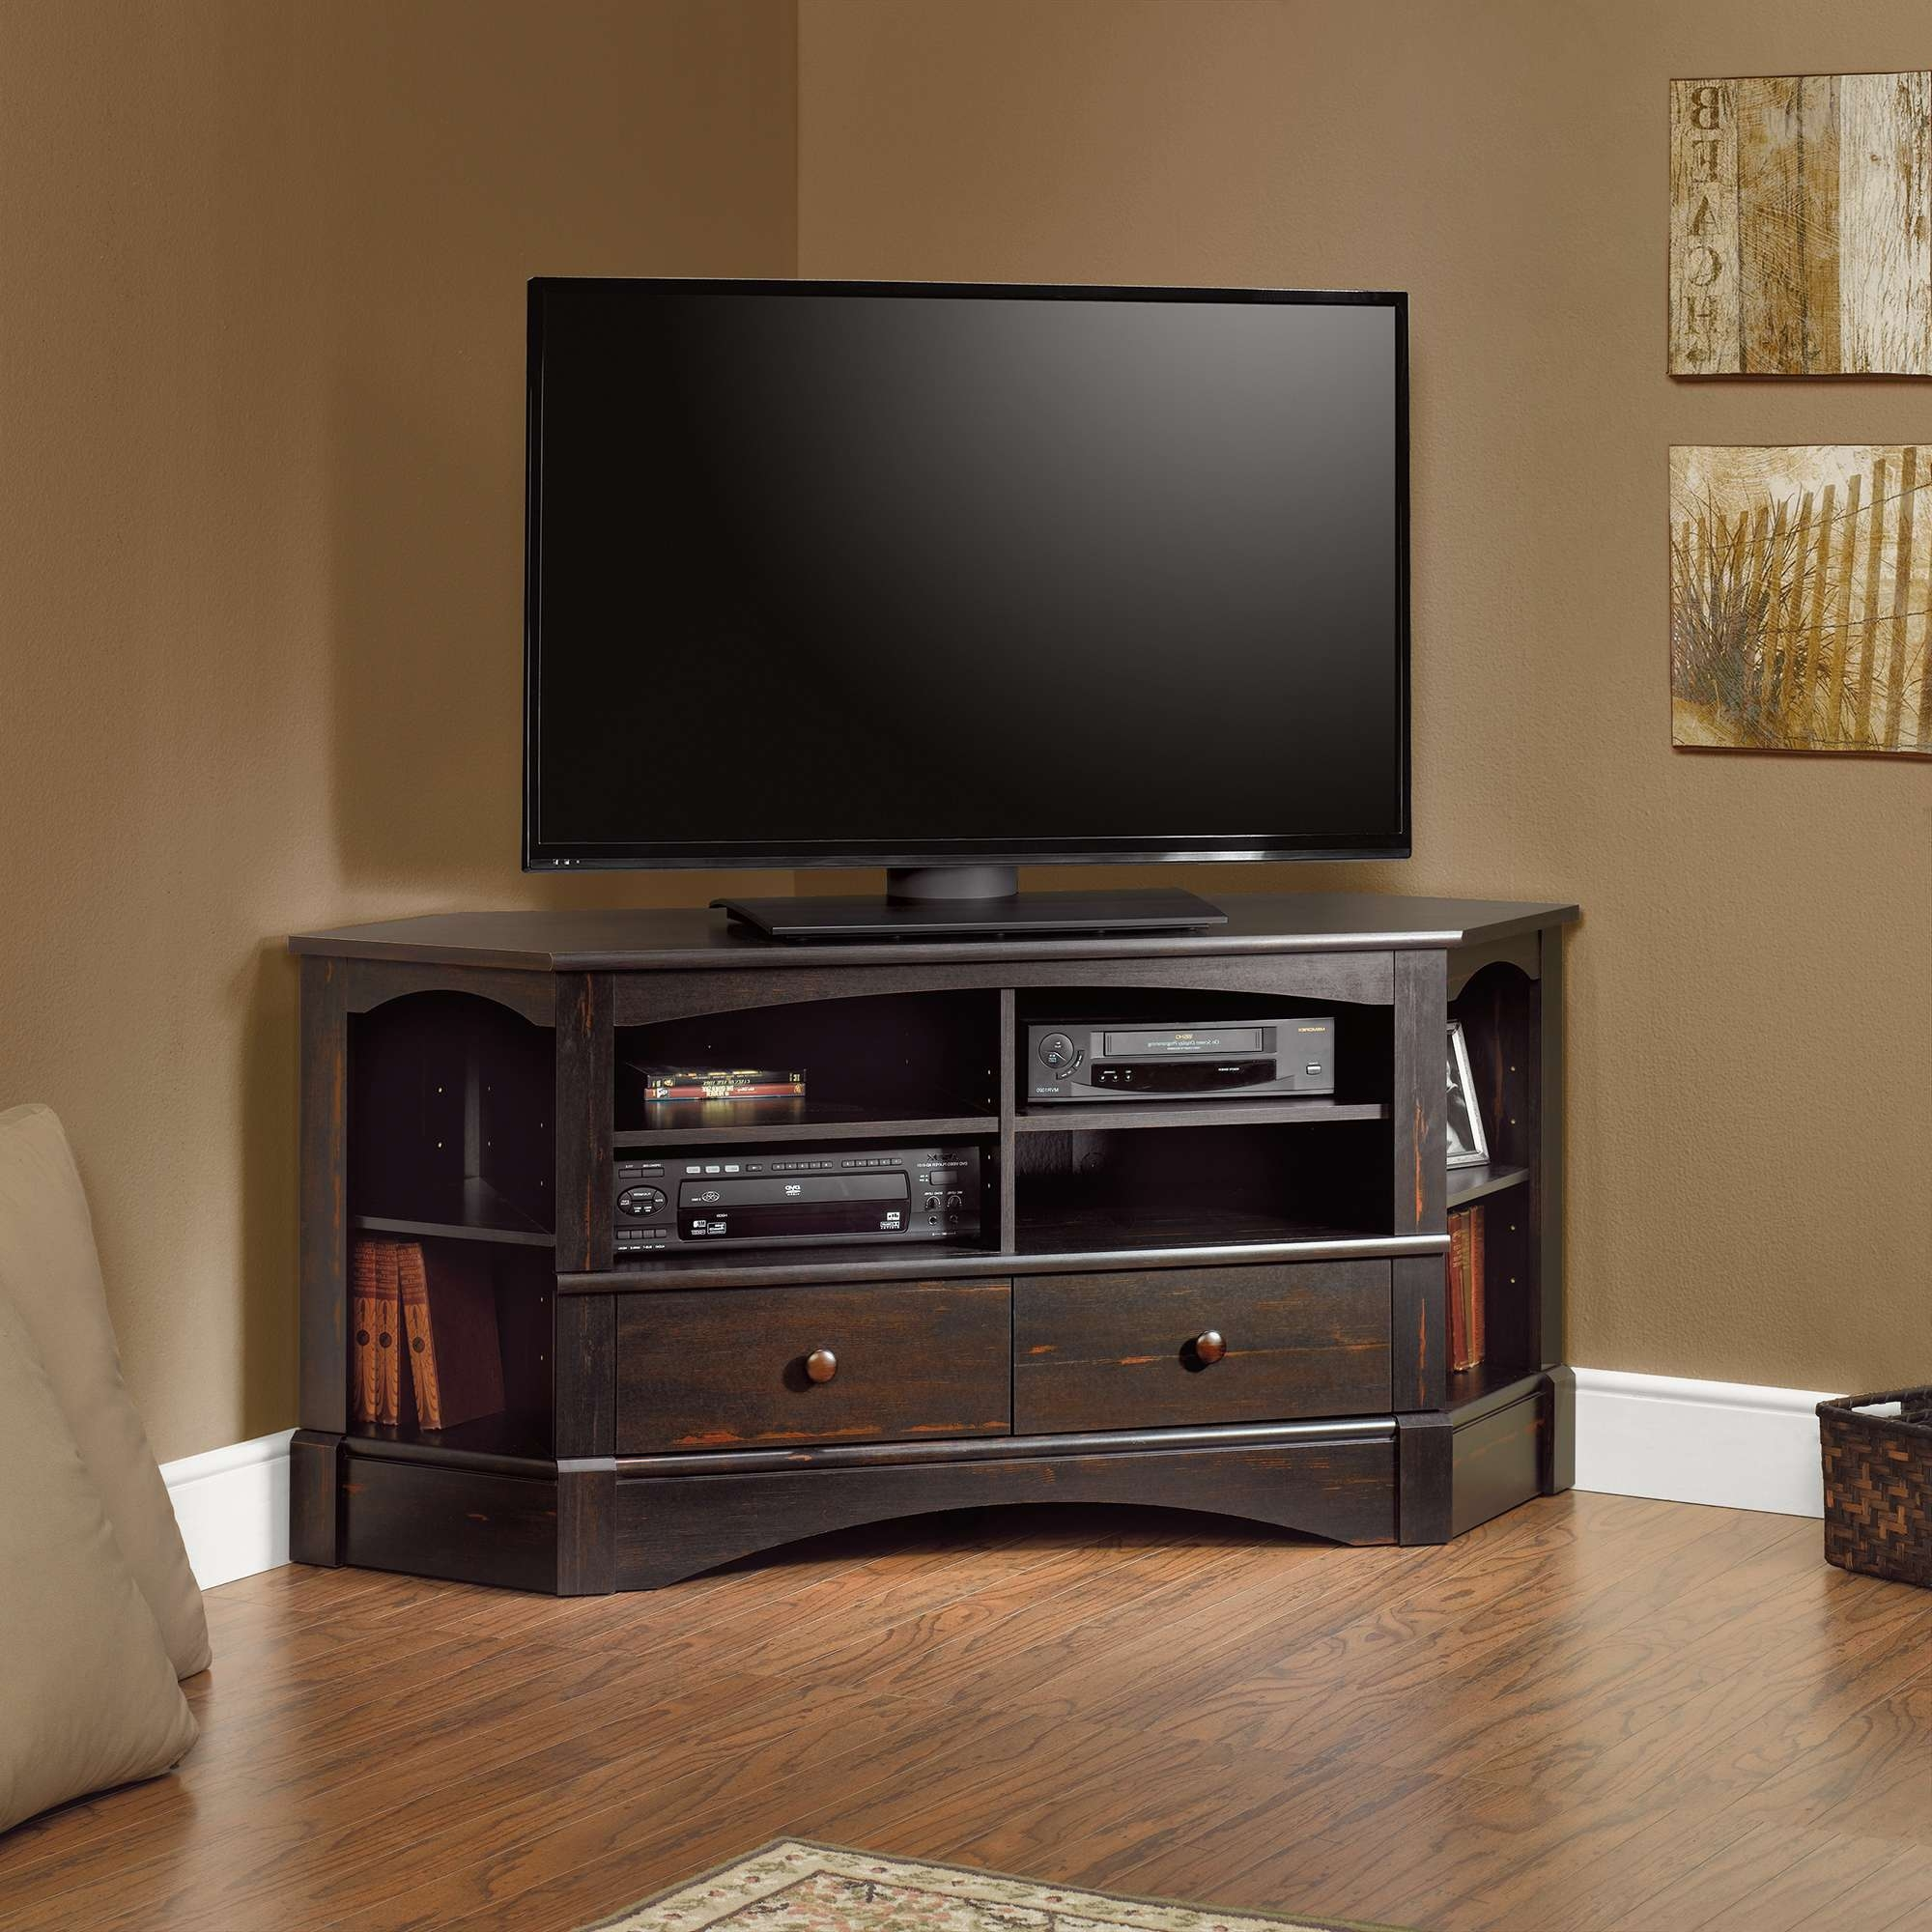 Tv Stand : Imposing Led Tv Standture Image Inspirations Dark Brown With Regard To Wooden Corner Tv Stands (View 16 of 20)